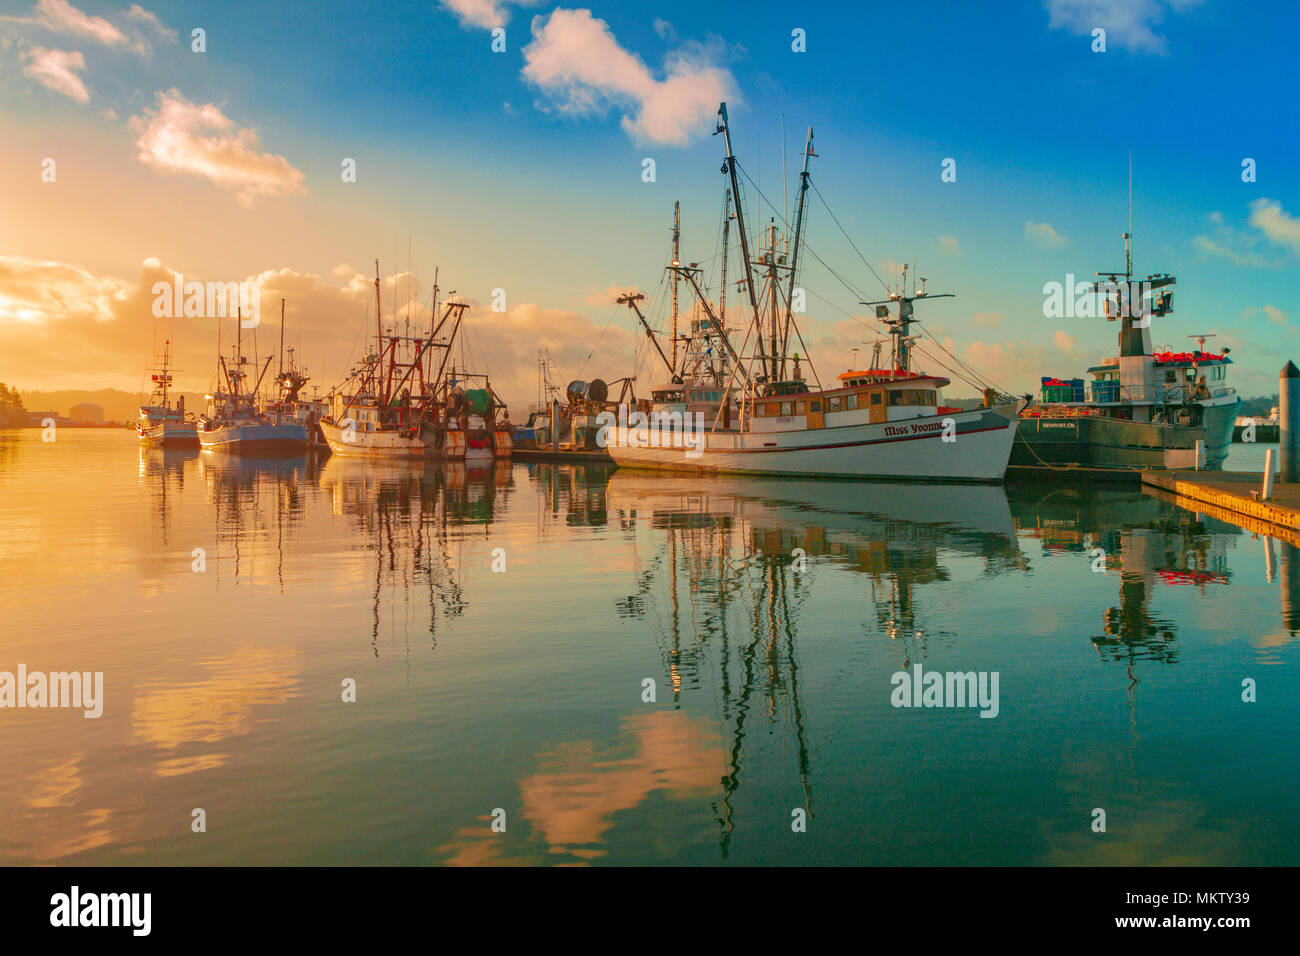 boats, moored, morning, bay front, clouds, blue sky, water, reflections - Stock Image